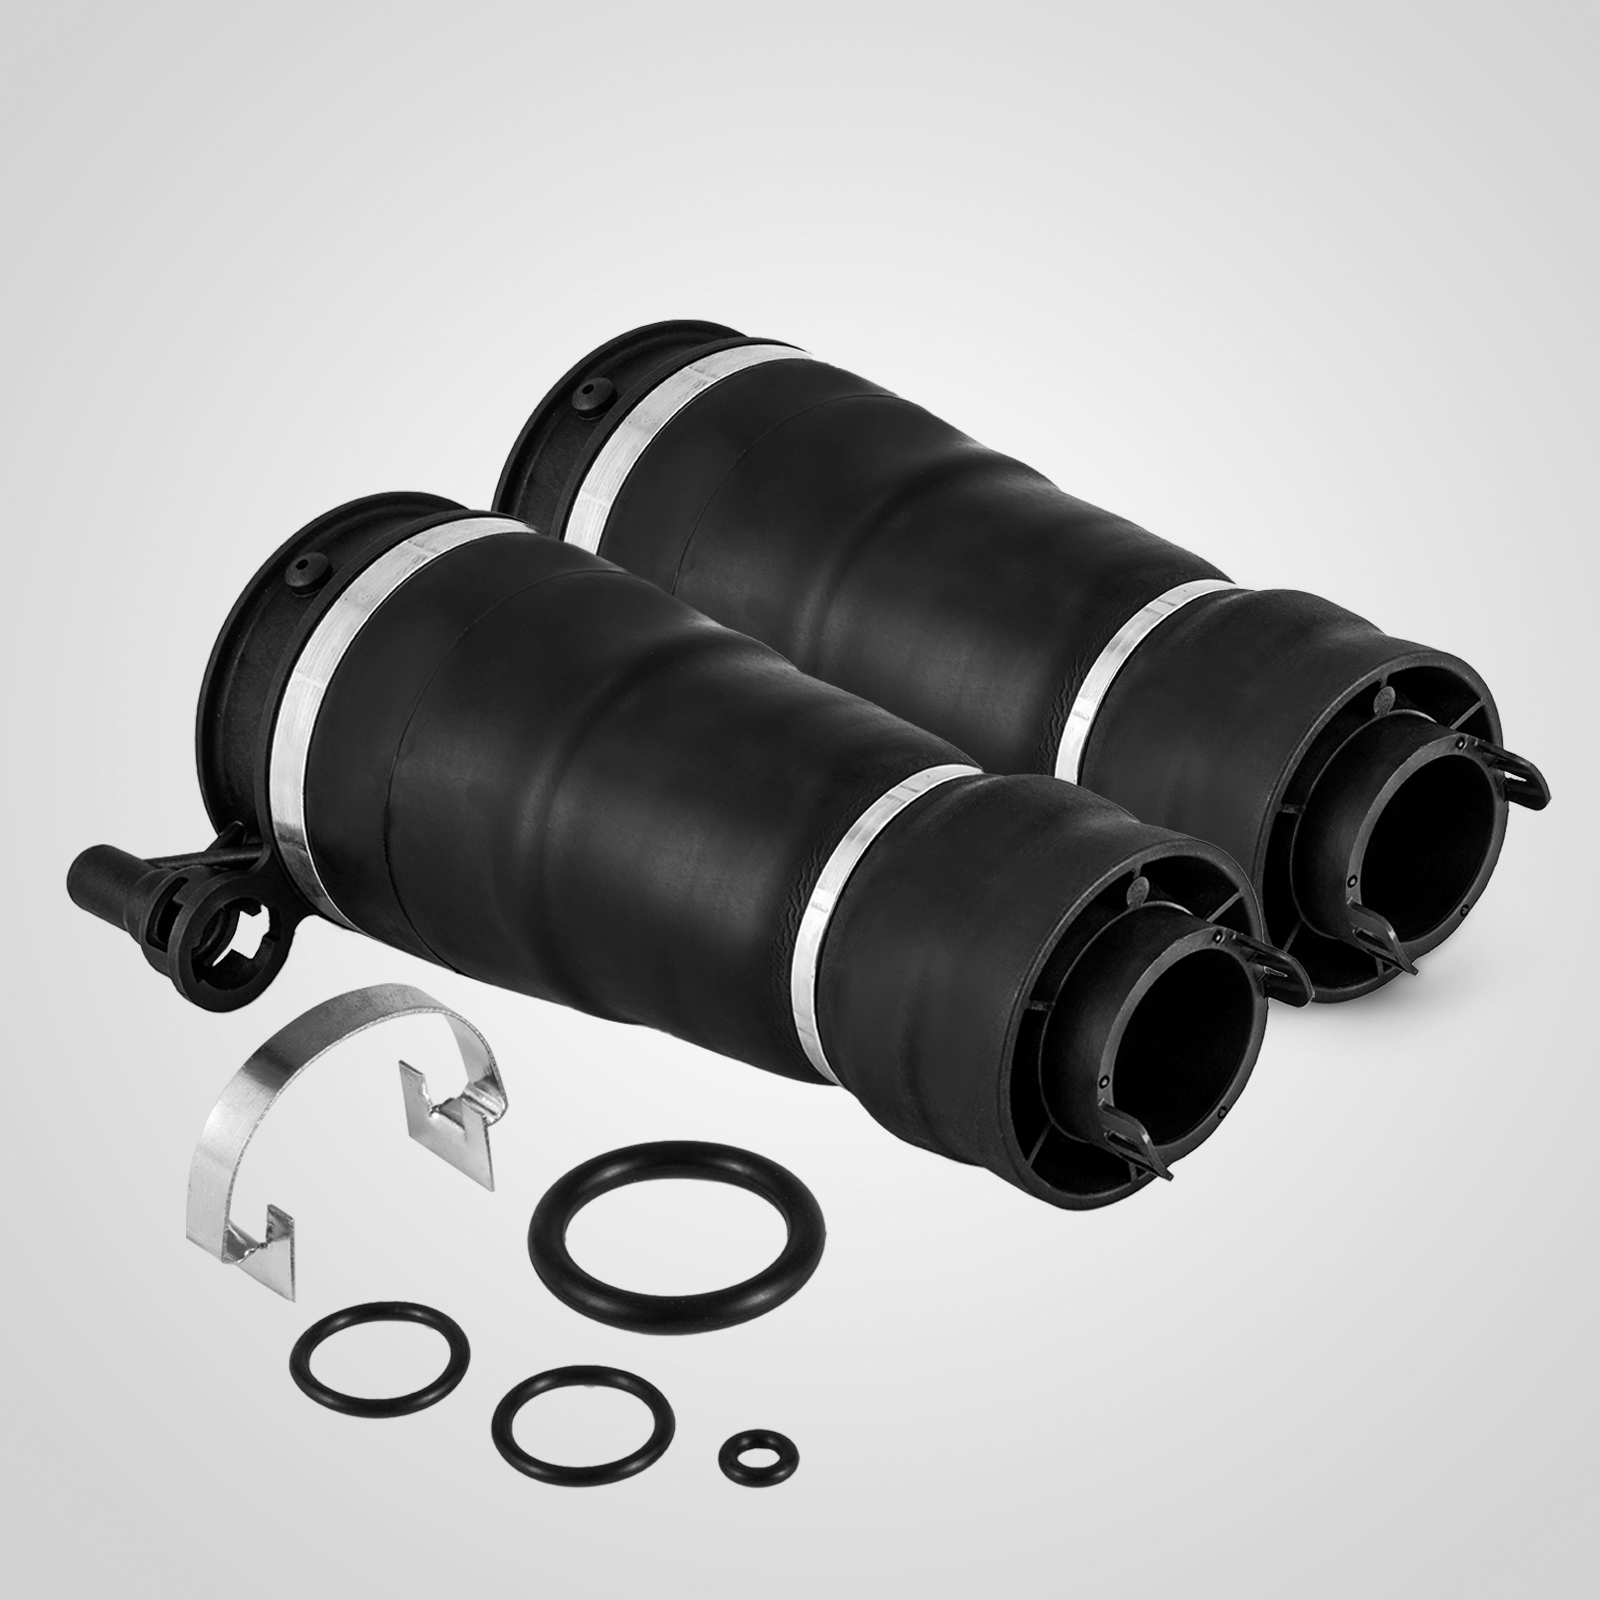 2006 Lincoln Navigator Suspension: For 2003-06 Lincoln Navigator Front Air Suspension Air